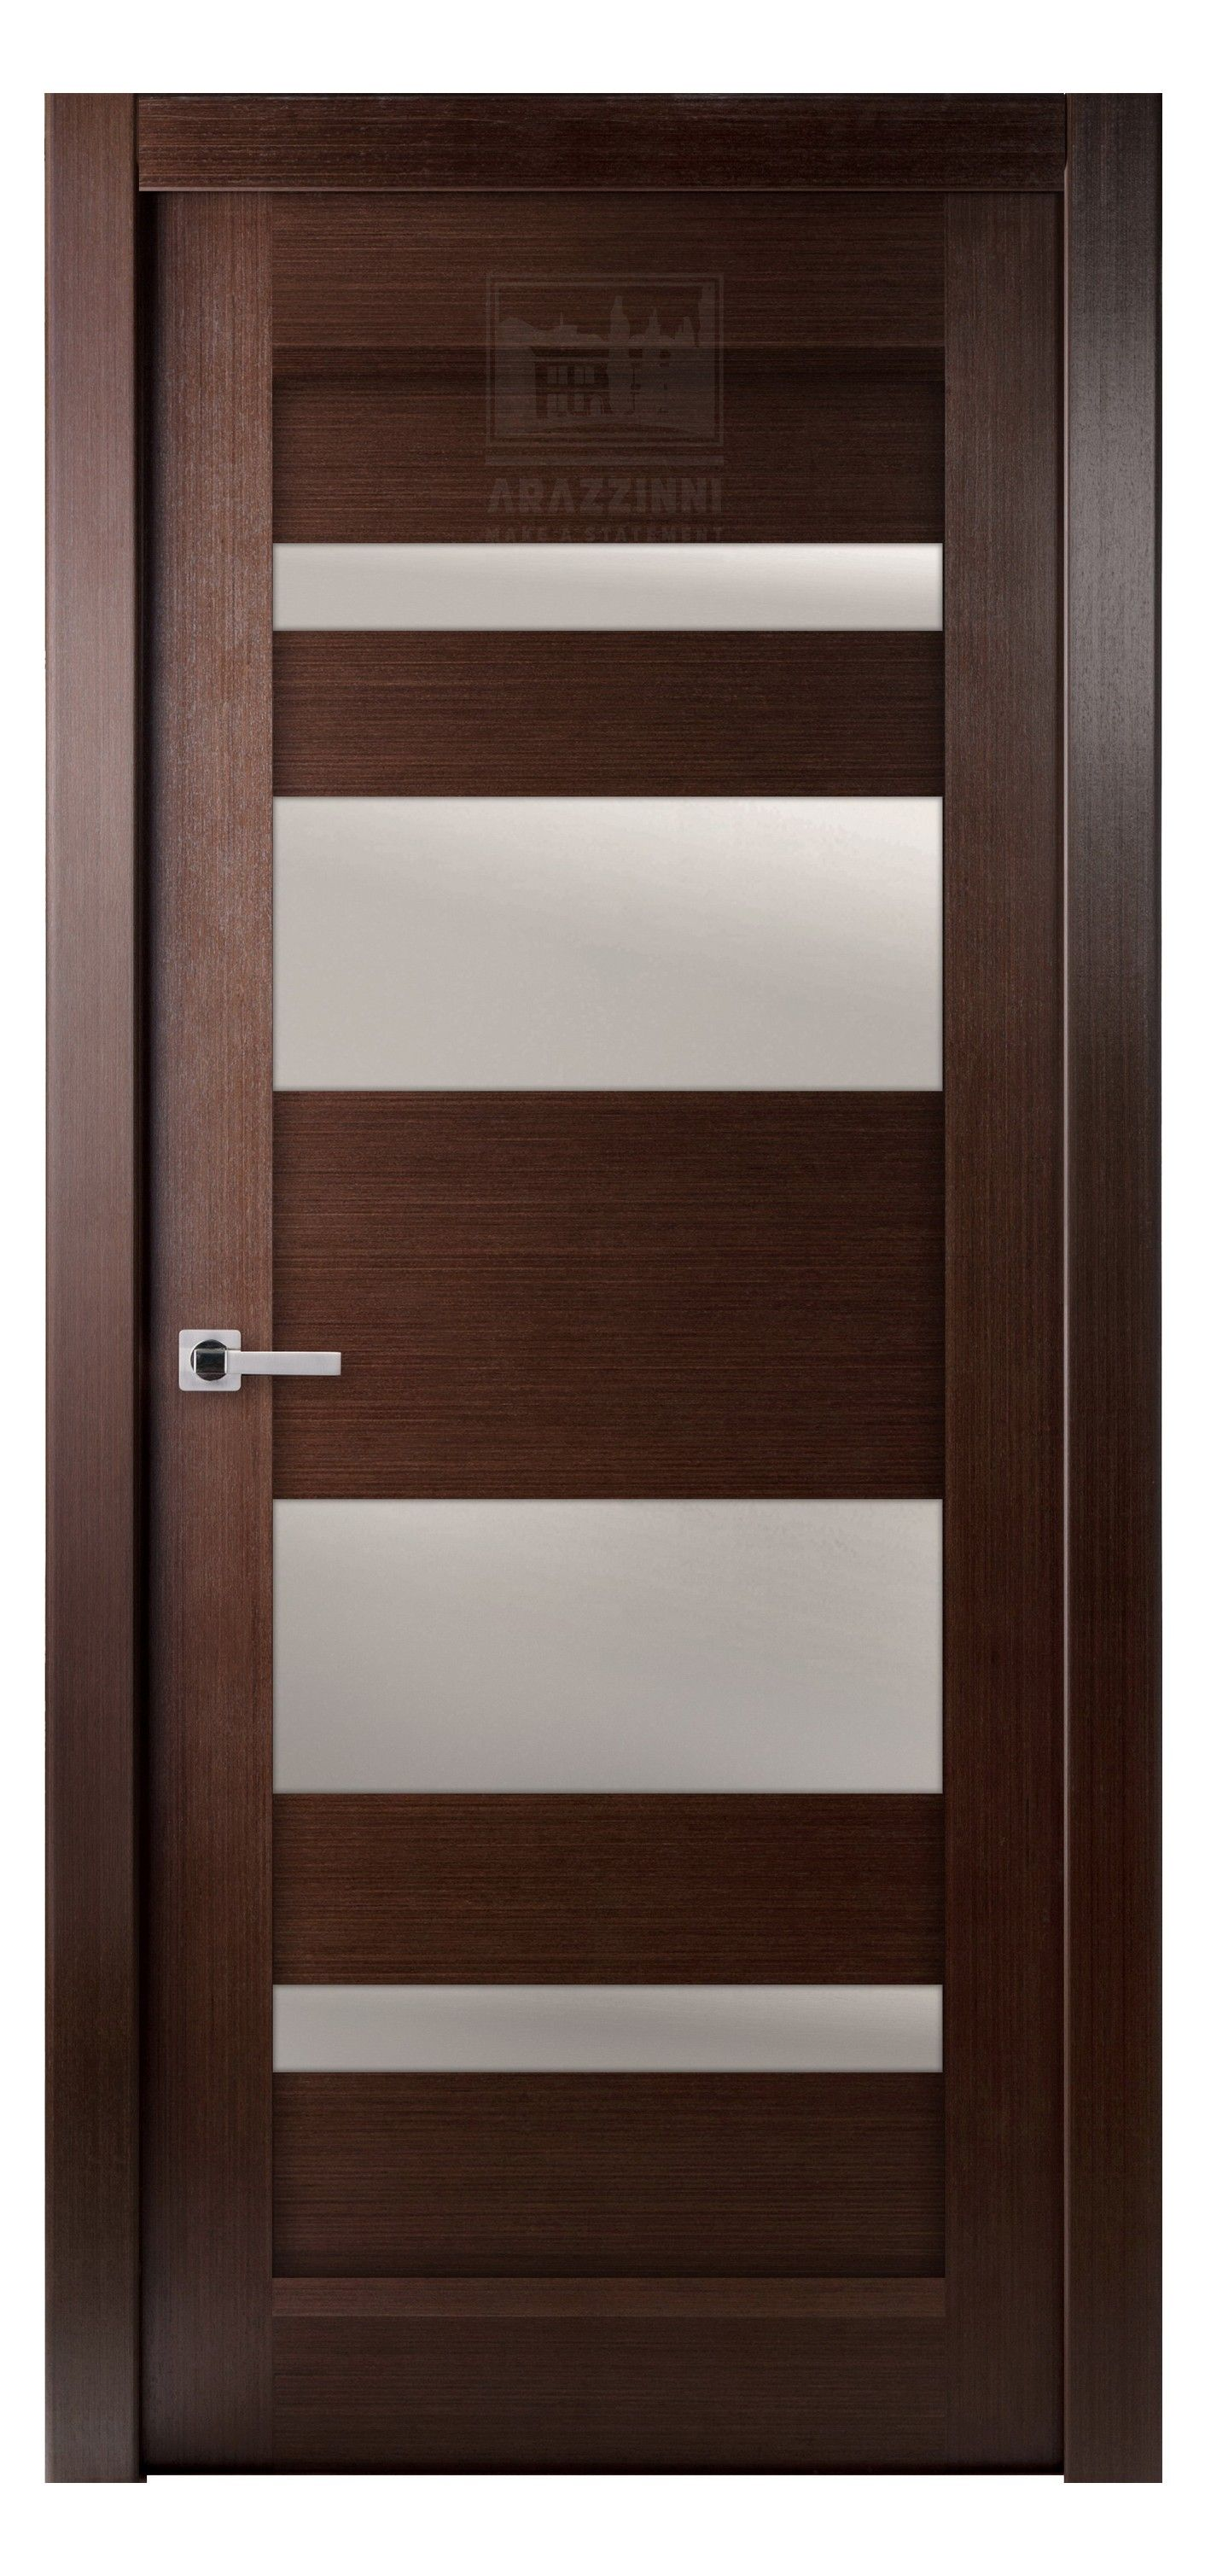 Mirella Vetro Interior Door Wenge Wood Doors Interior Wooden Doors Doors Interior